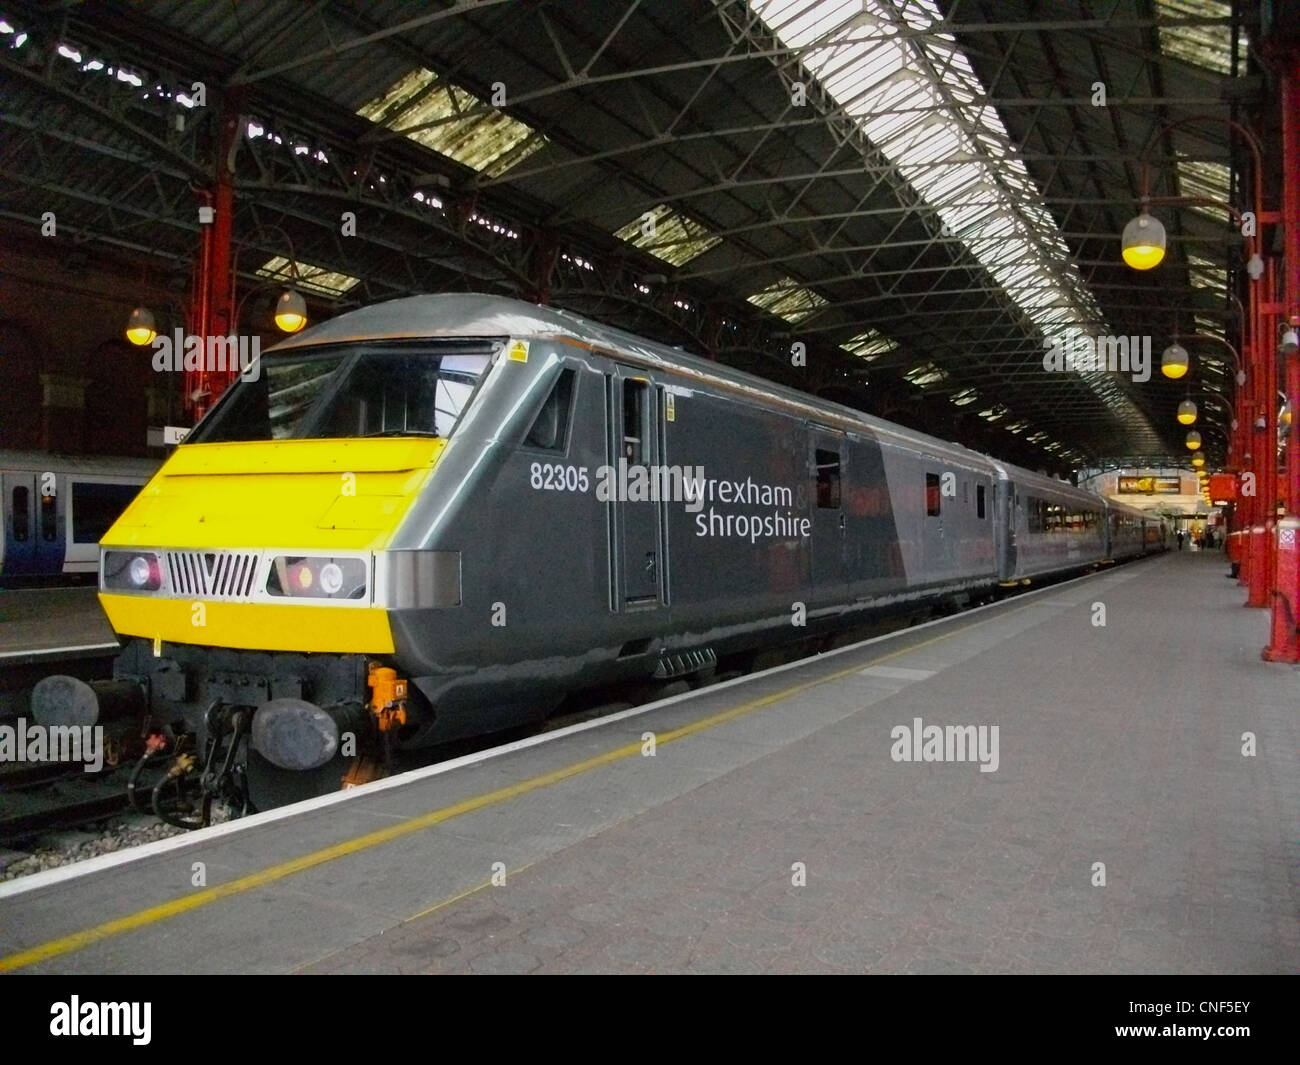 The first refurbished train for Wrexham & Shropshire stands at London Marylebone - Stock Image